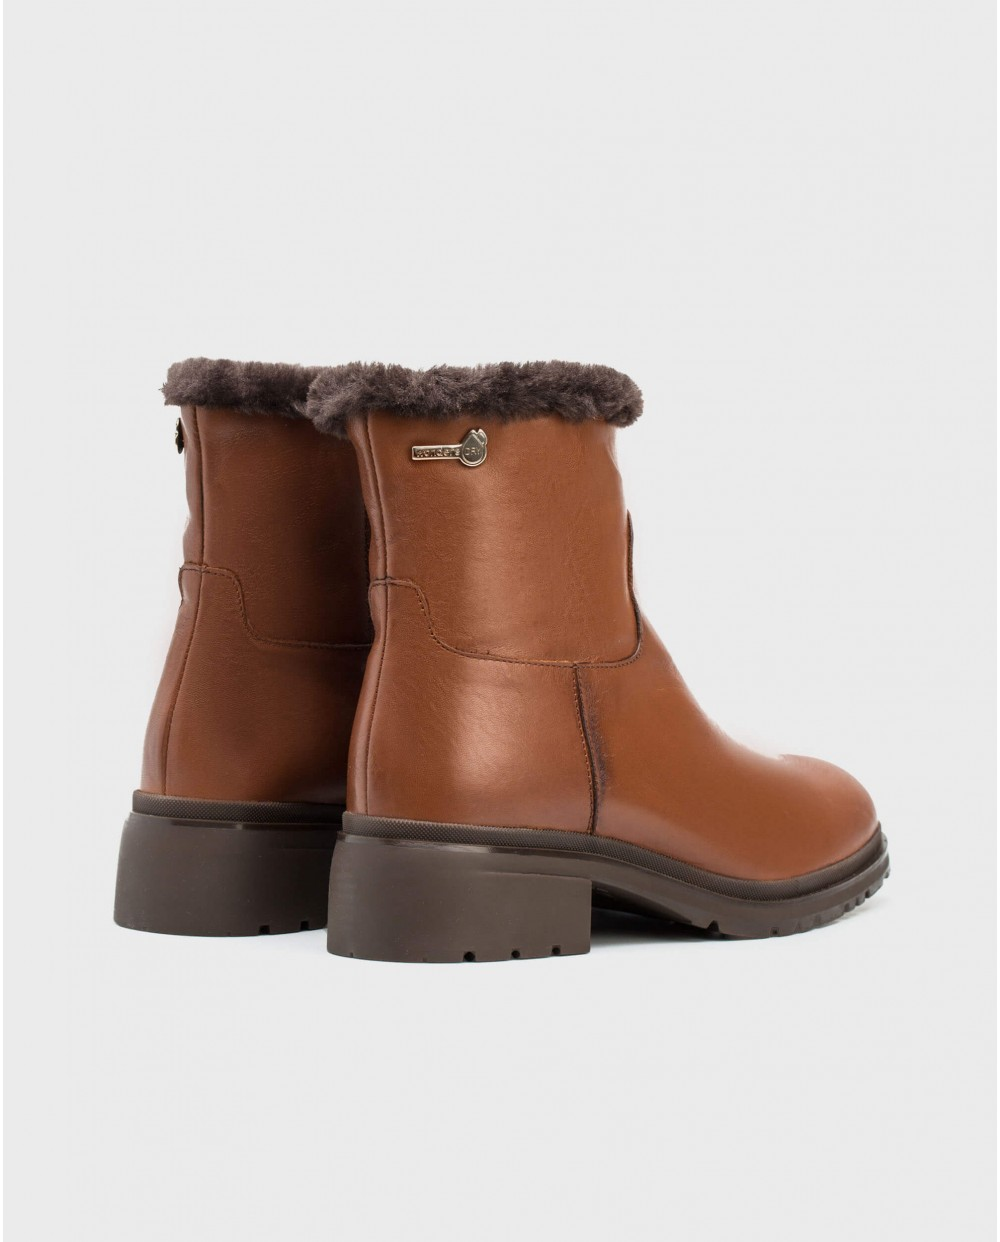 Wonders-Ankle Boots-Waterproof leather ankle boot